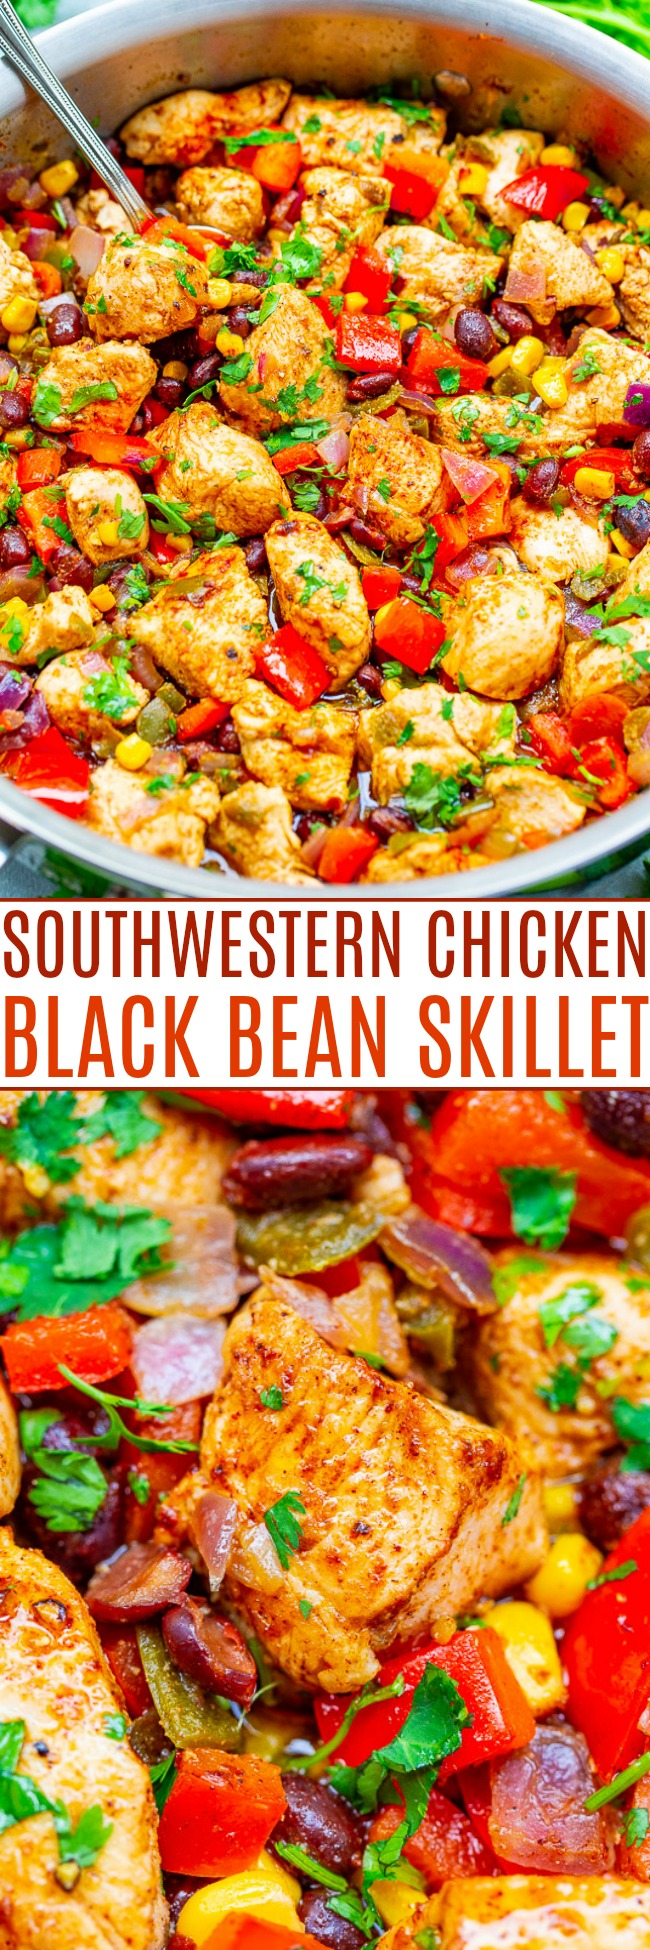 15-Minute Southwestern Chicken and Black Bean Skillet - An EASY chicken skillet with red onions, black beans, corn, green chiles, lime juice, and cilantro!! So much flavor and texture in every bite of this HEALTHY naturally gluten-free recipe that's great for planned leftovers and meal prepping!!